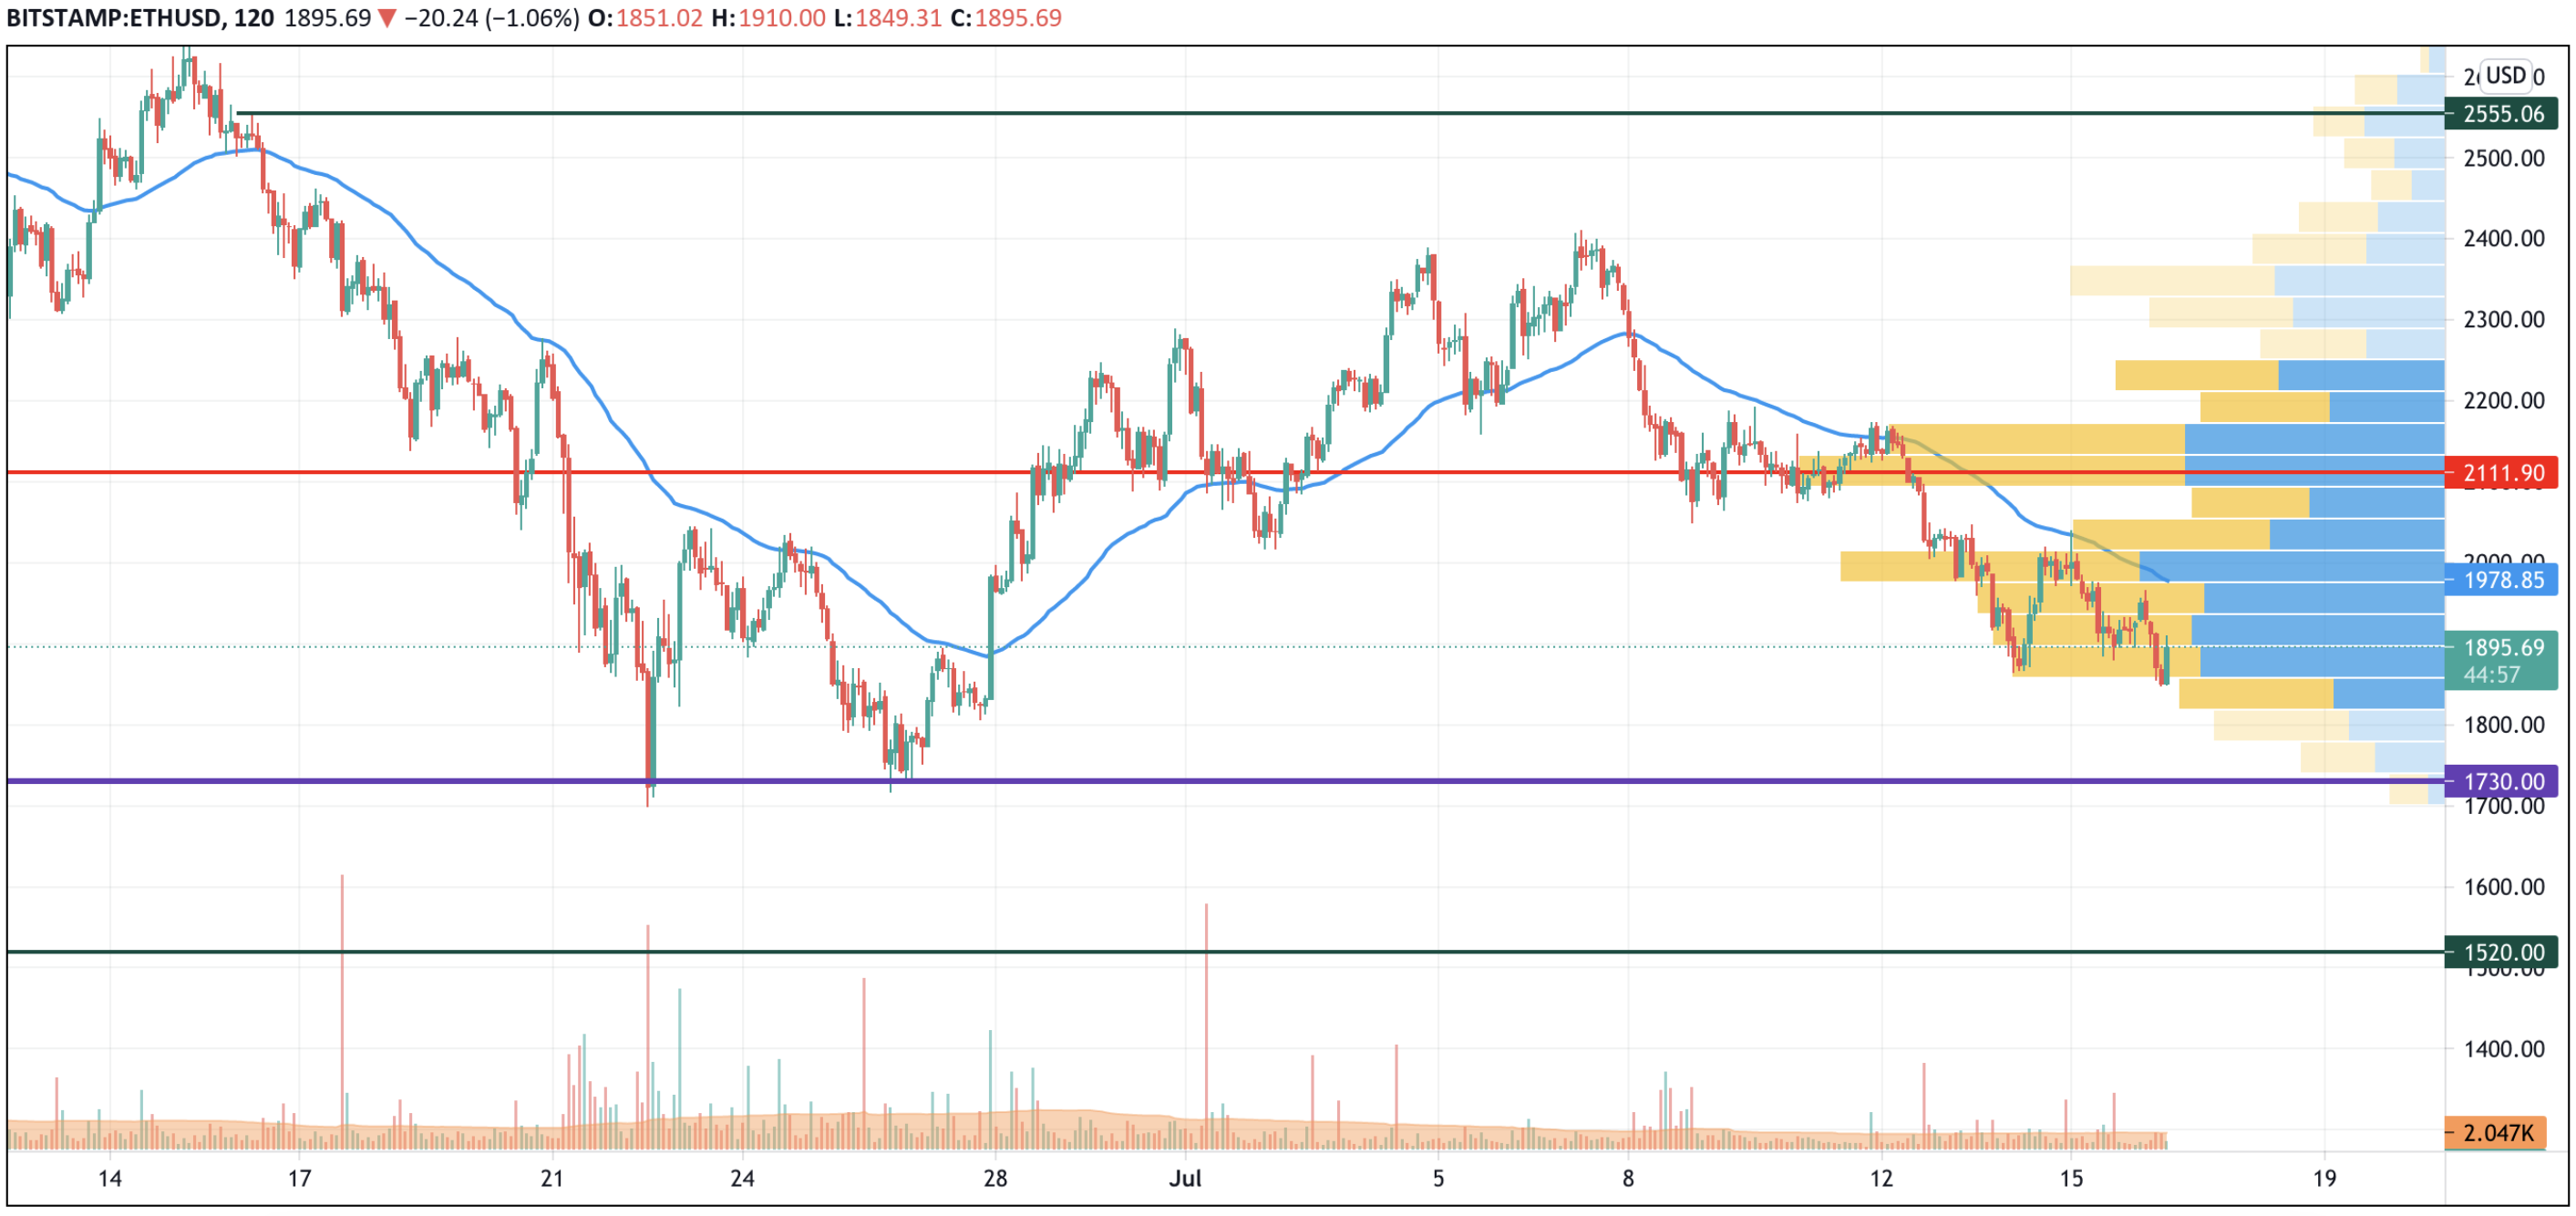 ETH/USD chart by TradingView